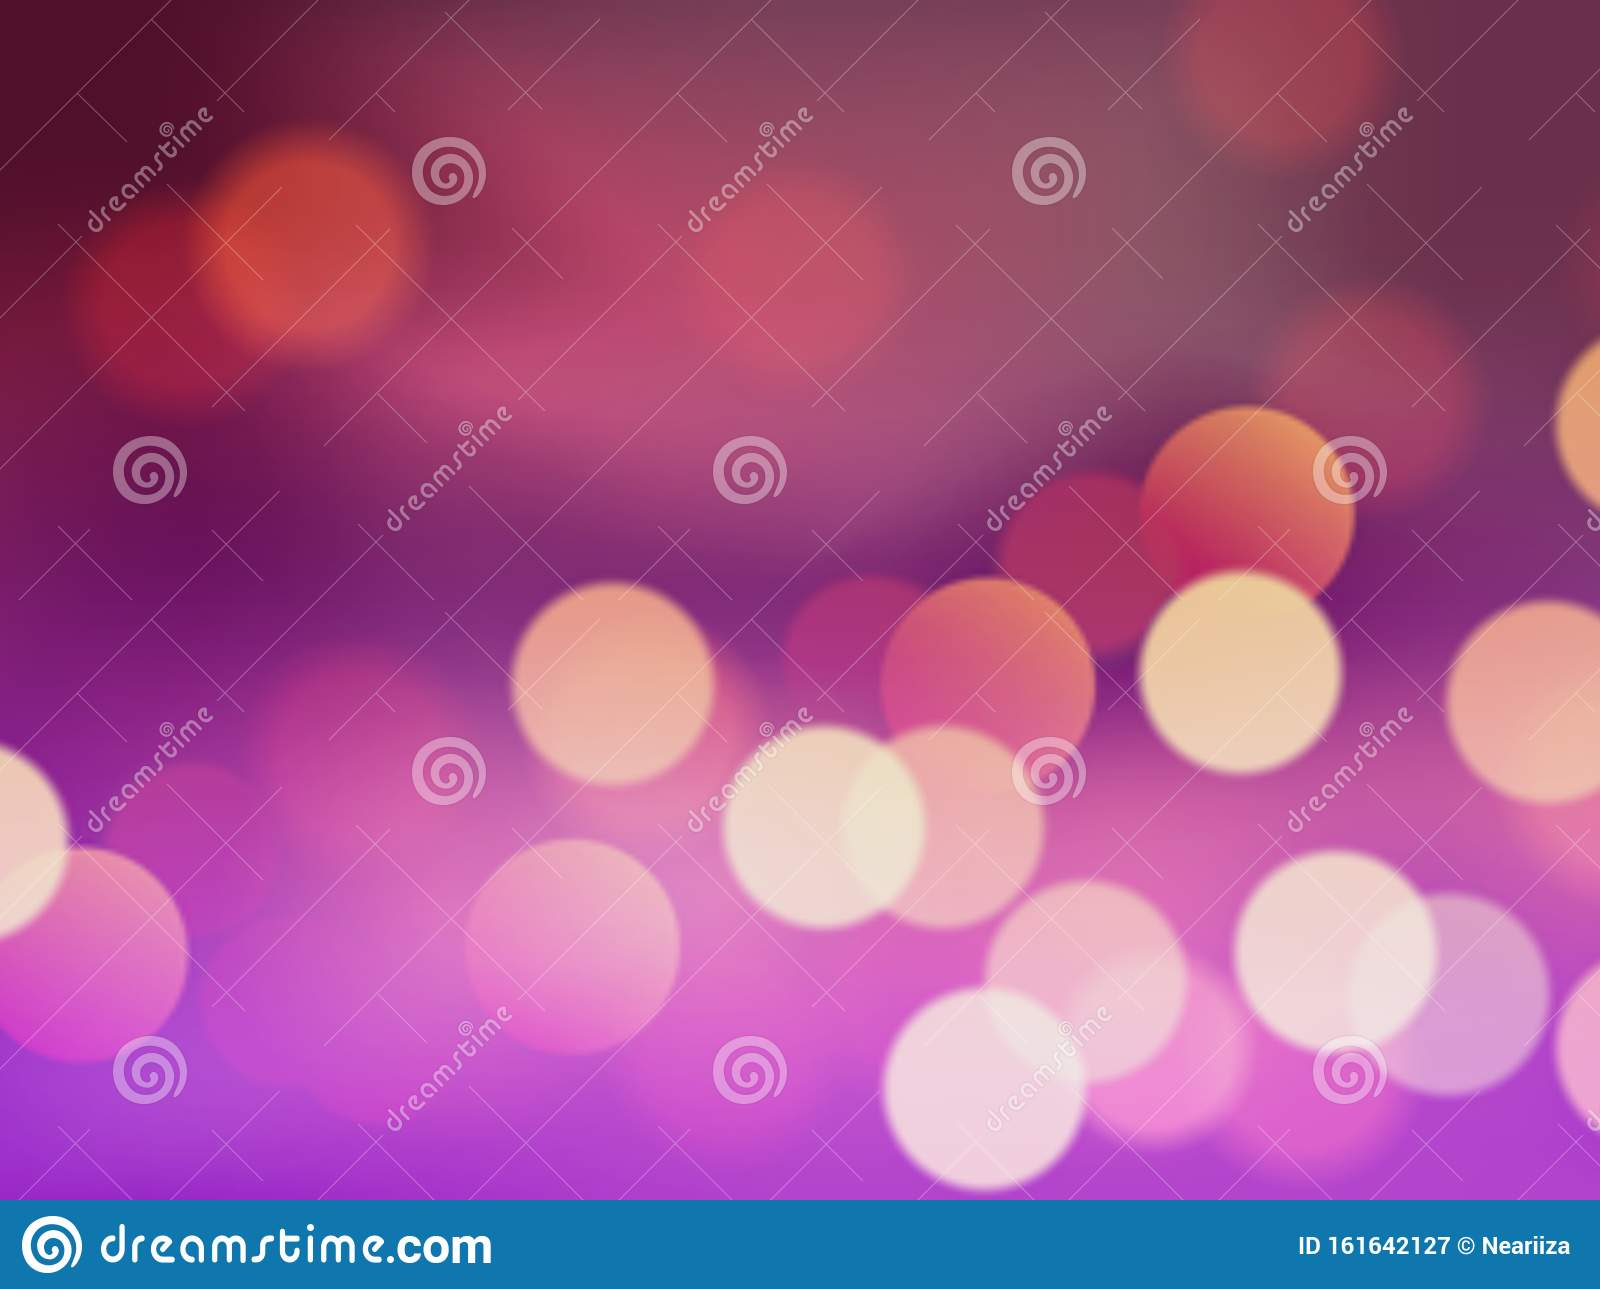 Colorful Abstract Background With Bokeh Light For Desktop